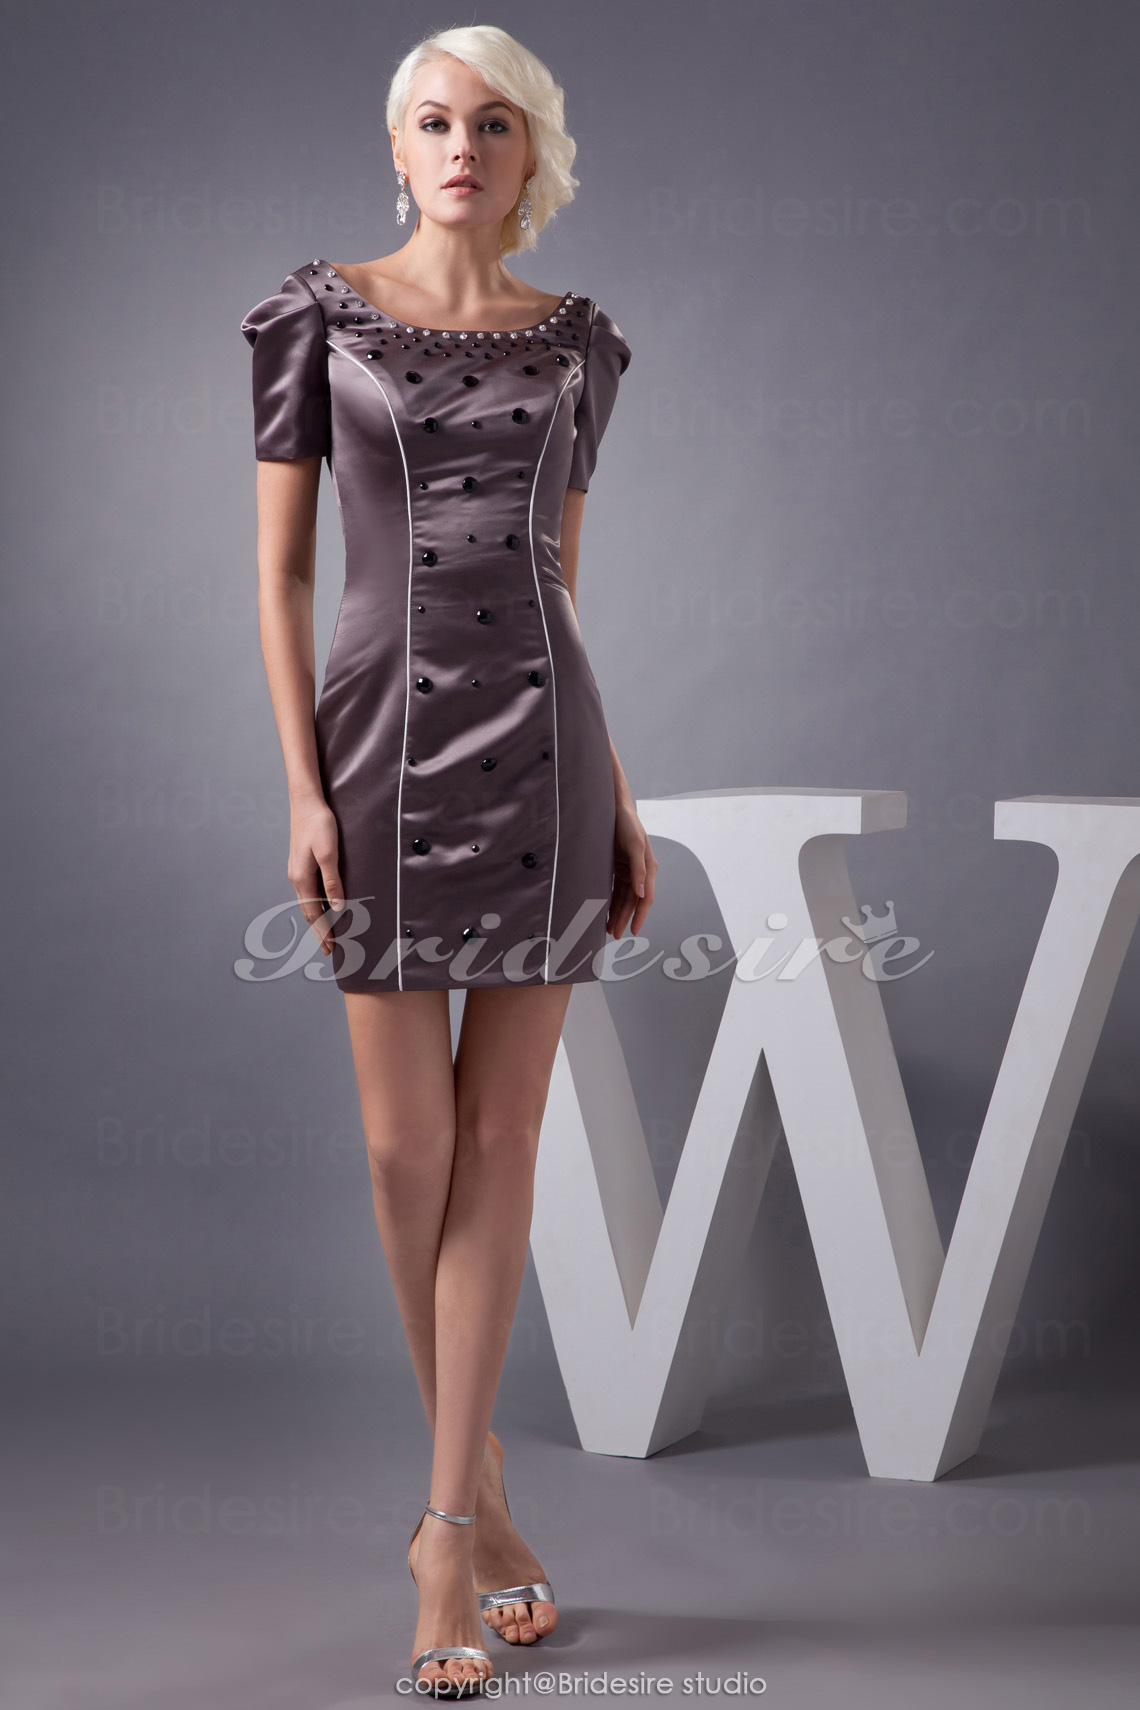 Sheath/Column Scoop Short/Mini Short Sleeve Satin Dress